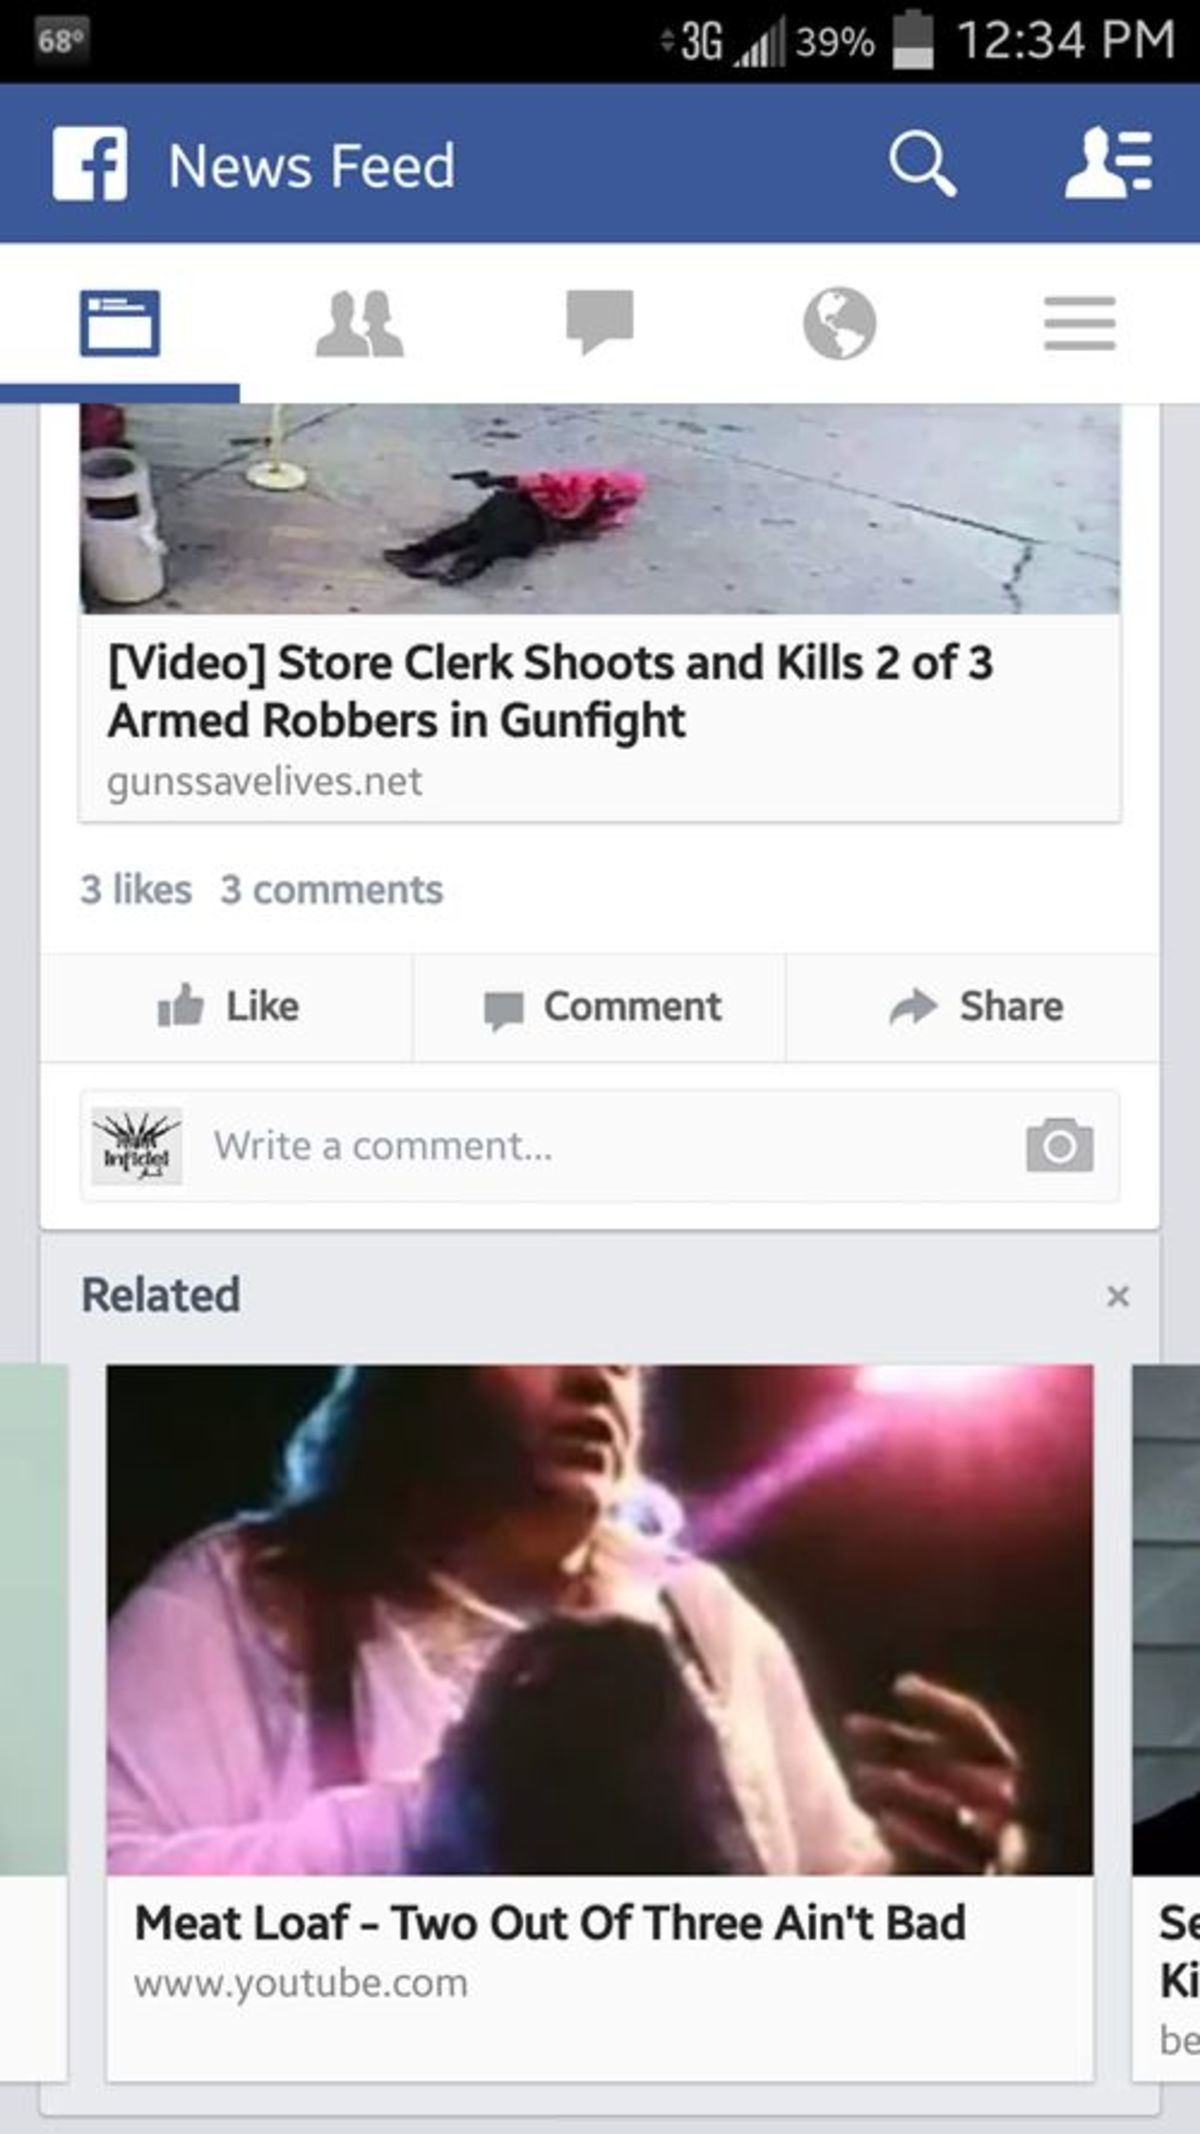 Related Videos. .. Damn Facebook your algorithms went to a dark place